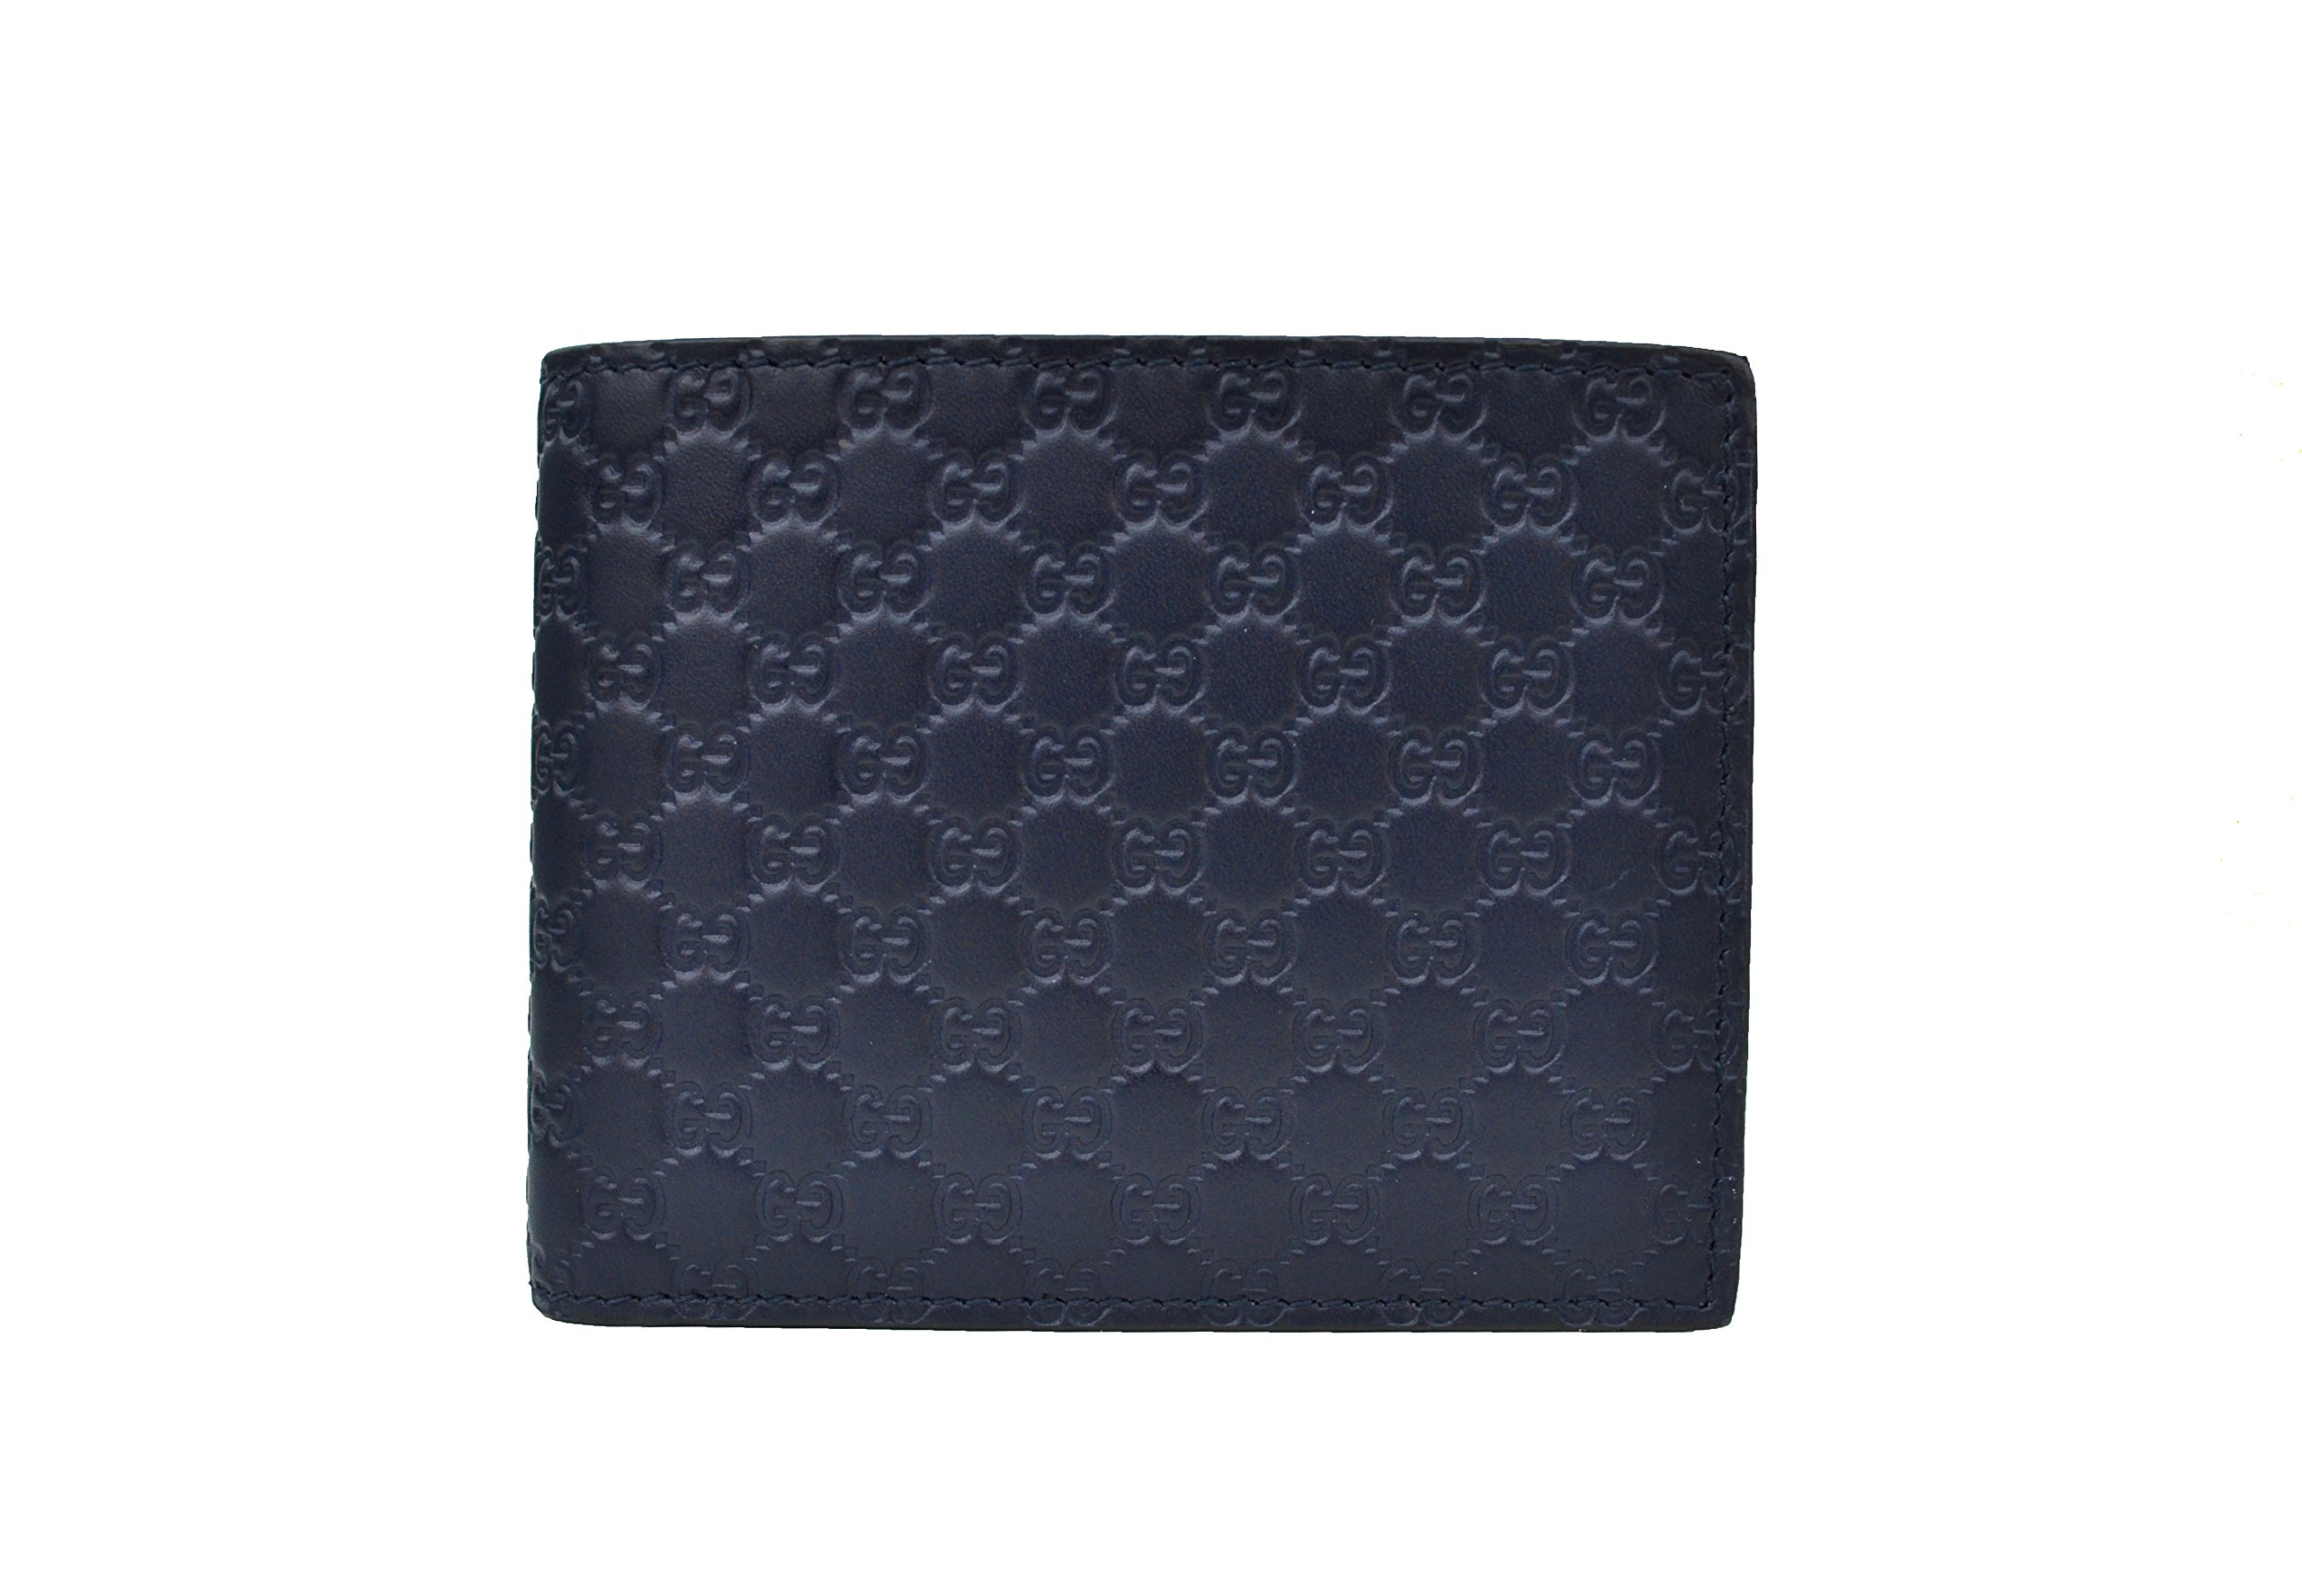 GUCCI Microguccissima Leather Wallet, Blue 278596BMJ1N4009